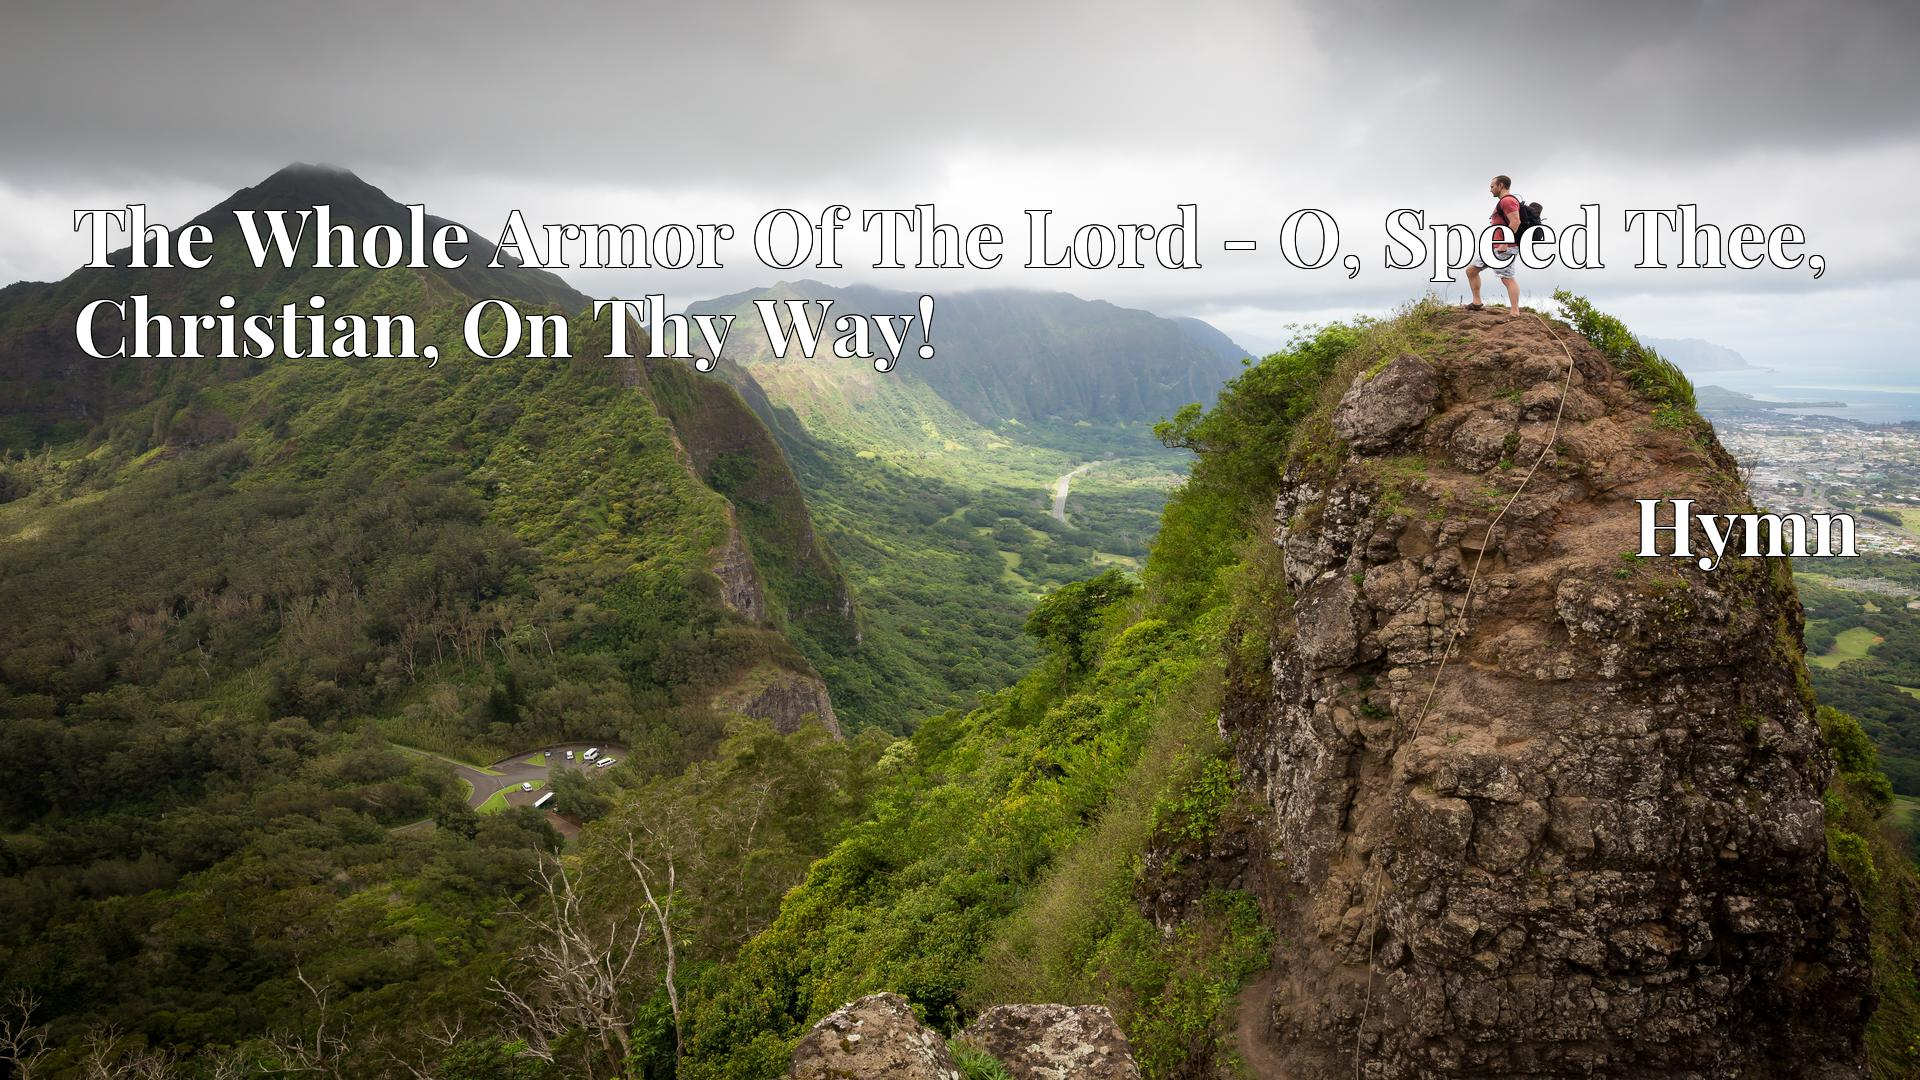 The Whole Armor Of The Lord - O, Speed Thee, Christian, On Thy Way! - Hymn